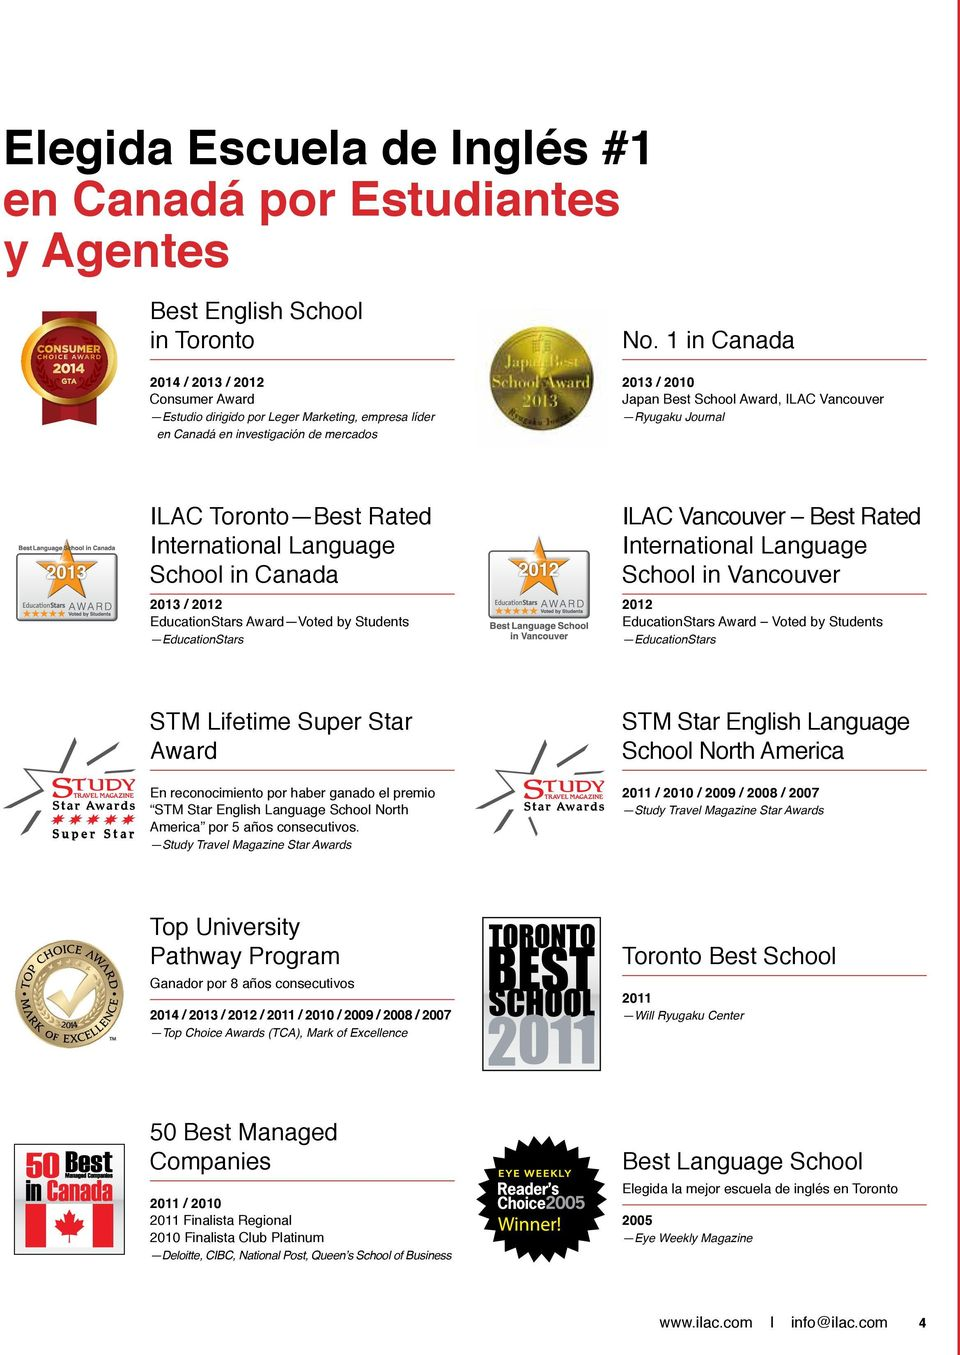 1 in Canada 2013 / 2010 Japan Best School Award, ILAC Vancouver Ryugaku Journal ILAC Toronto Best Rated International Language School in Canada 2013 / 2012 EducationStars Award Voted by Students